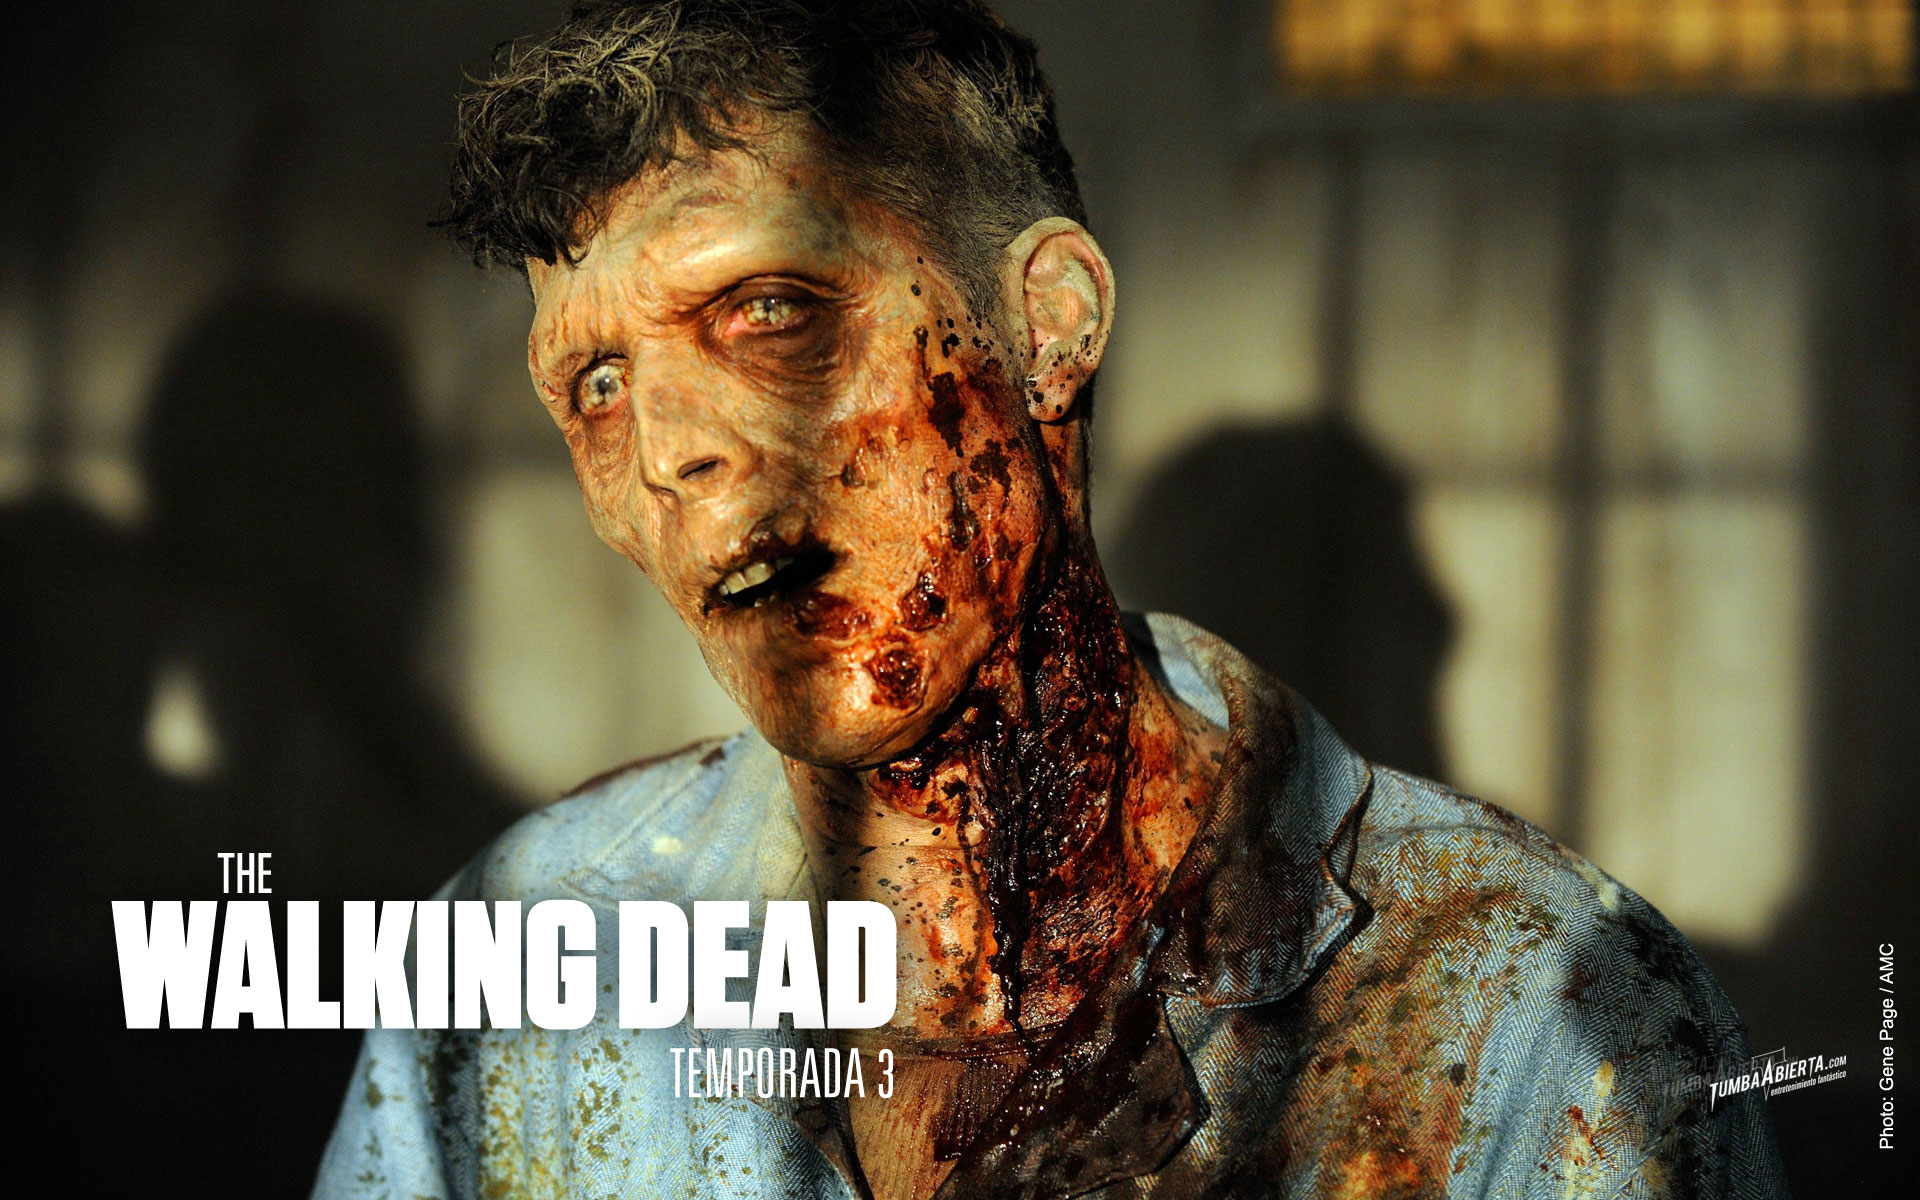 Wallpaper. The Walking dead Temporada 3